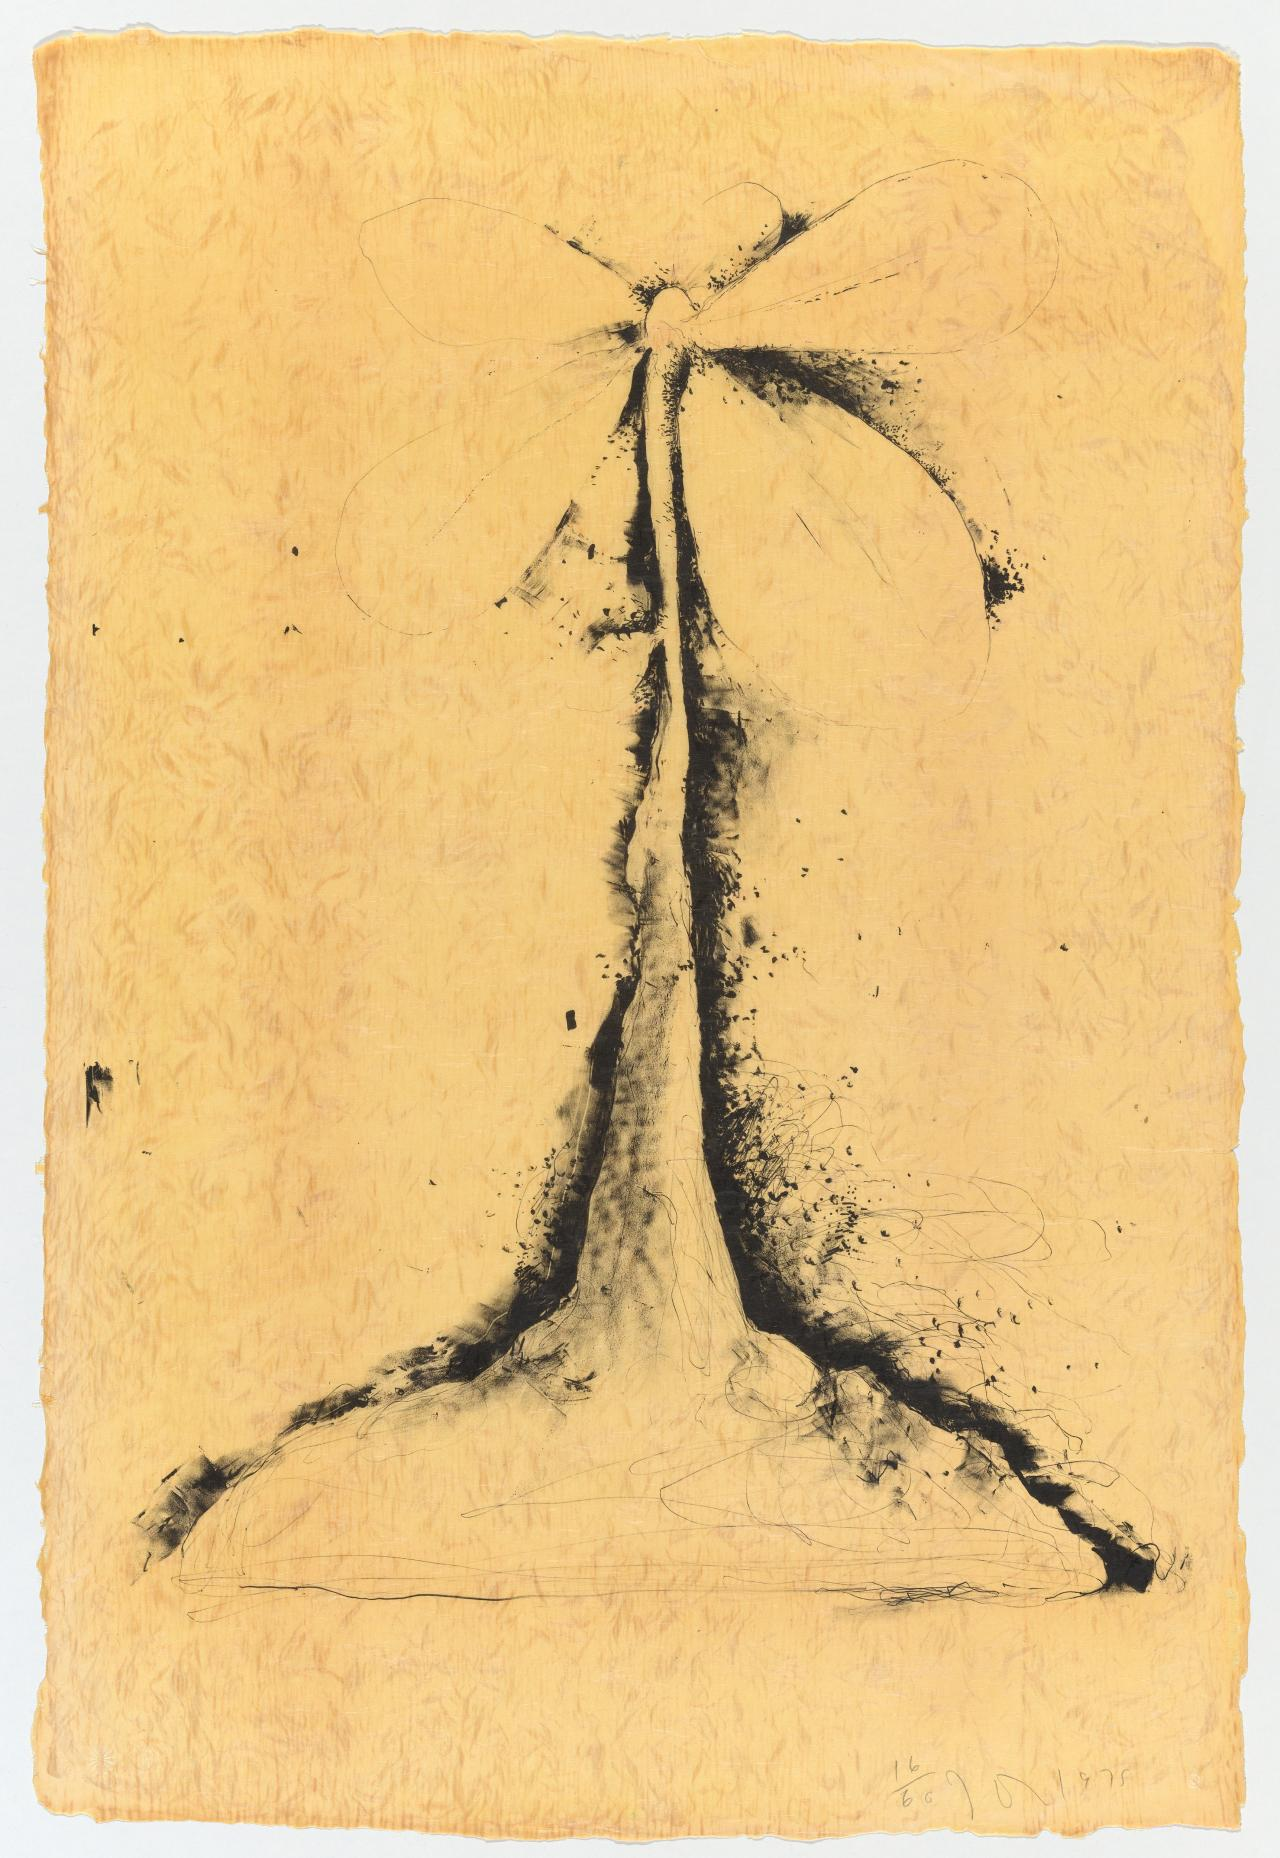 Lithographs of the sculpture: the plant becomes a fan 2